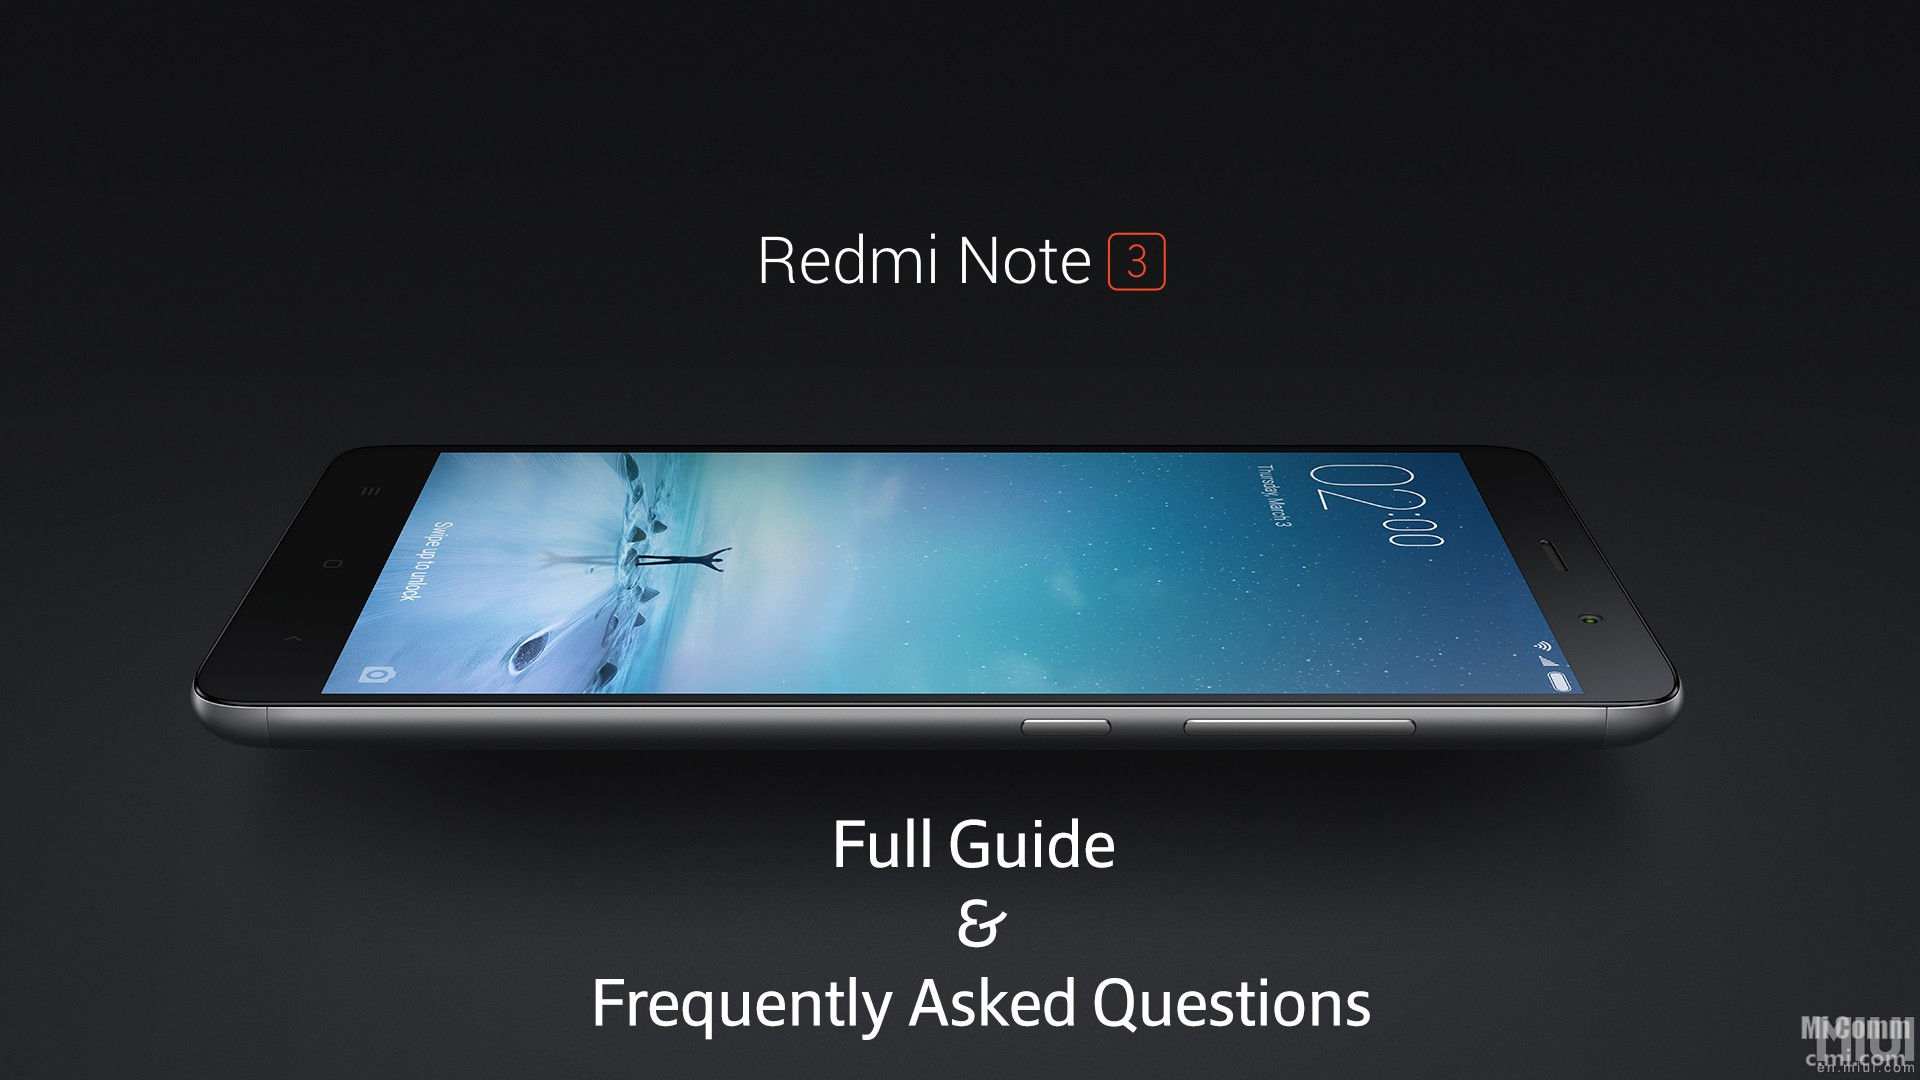 Redmi Note 3 Full Guide And Frequently Asked Questions Xiaomi 3s Pro 32 Gb Rom Global Gold